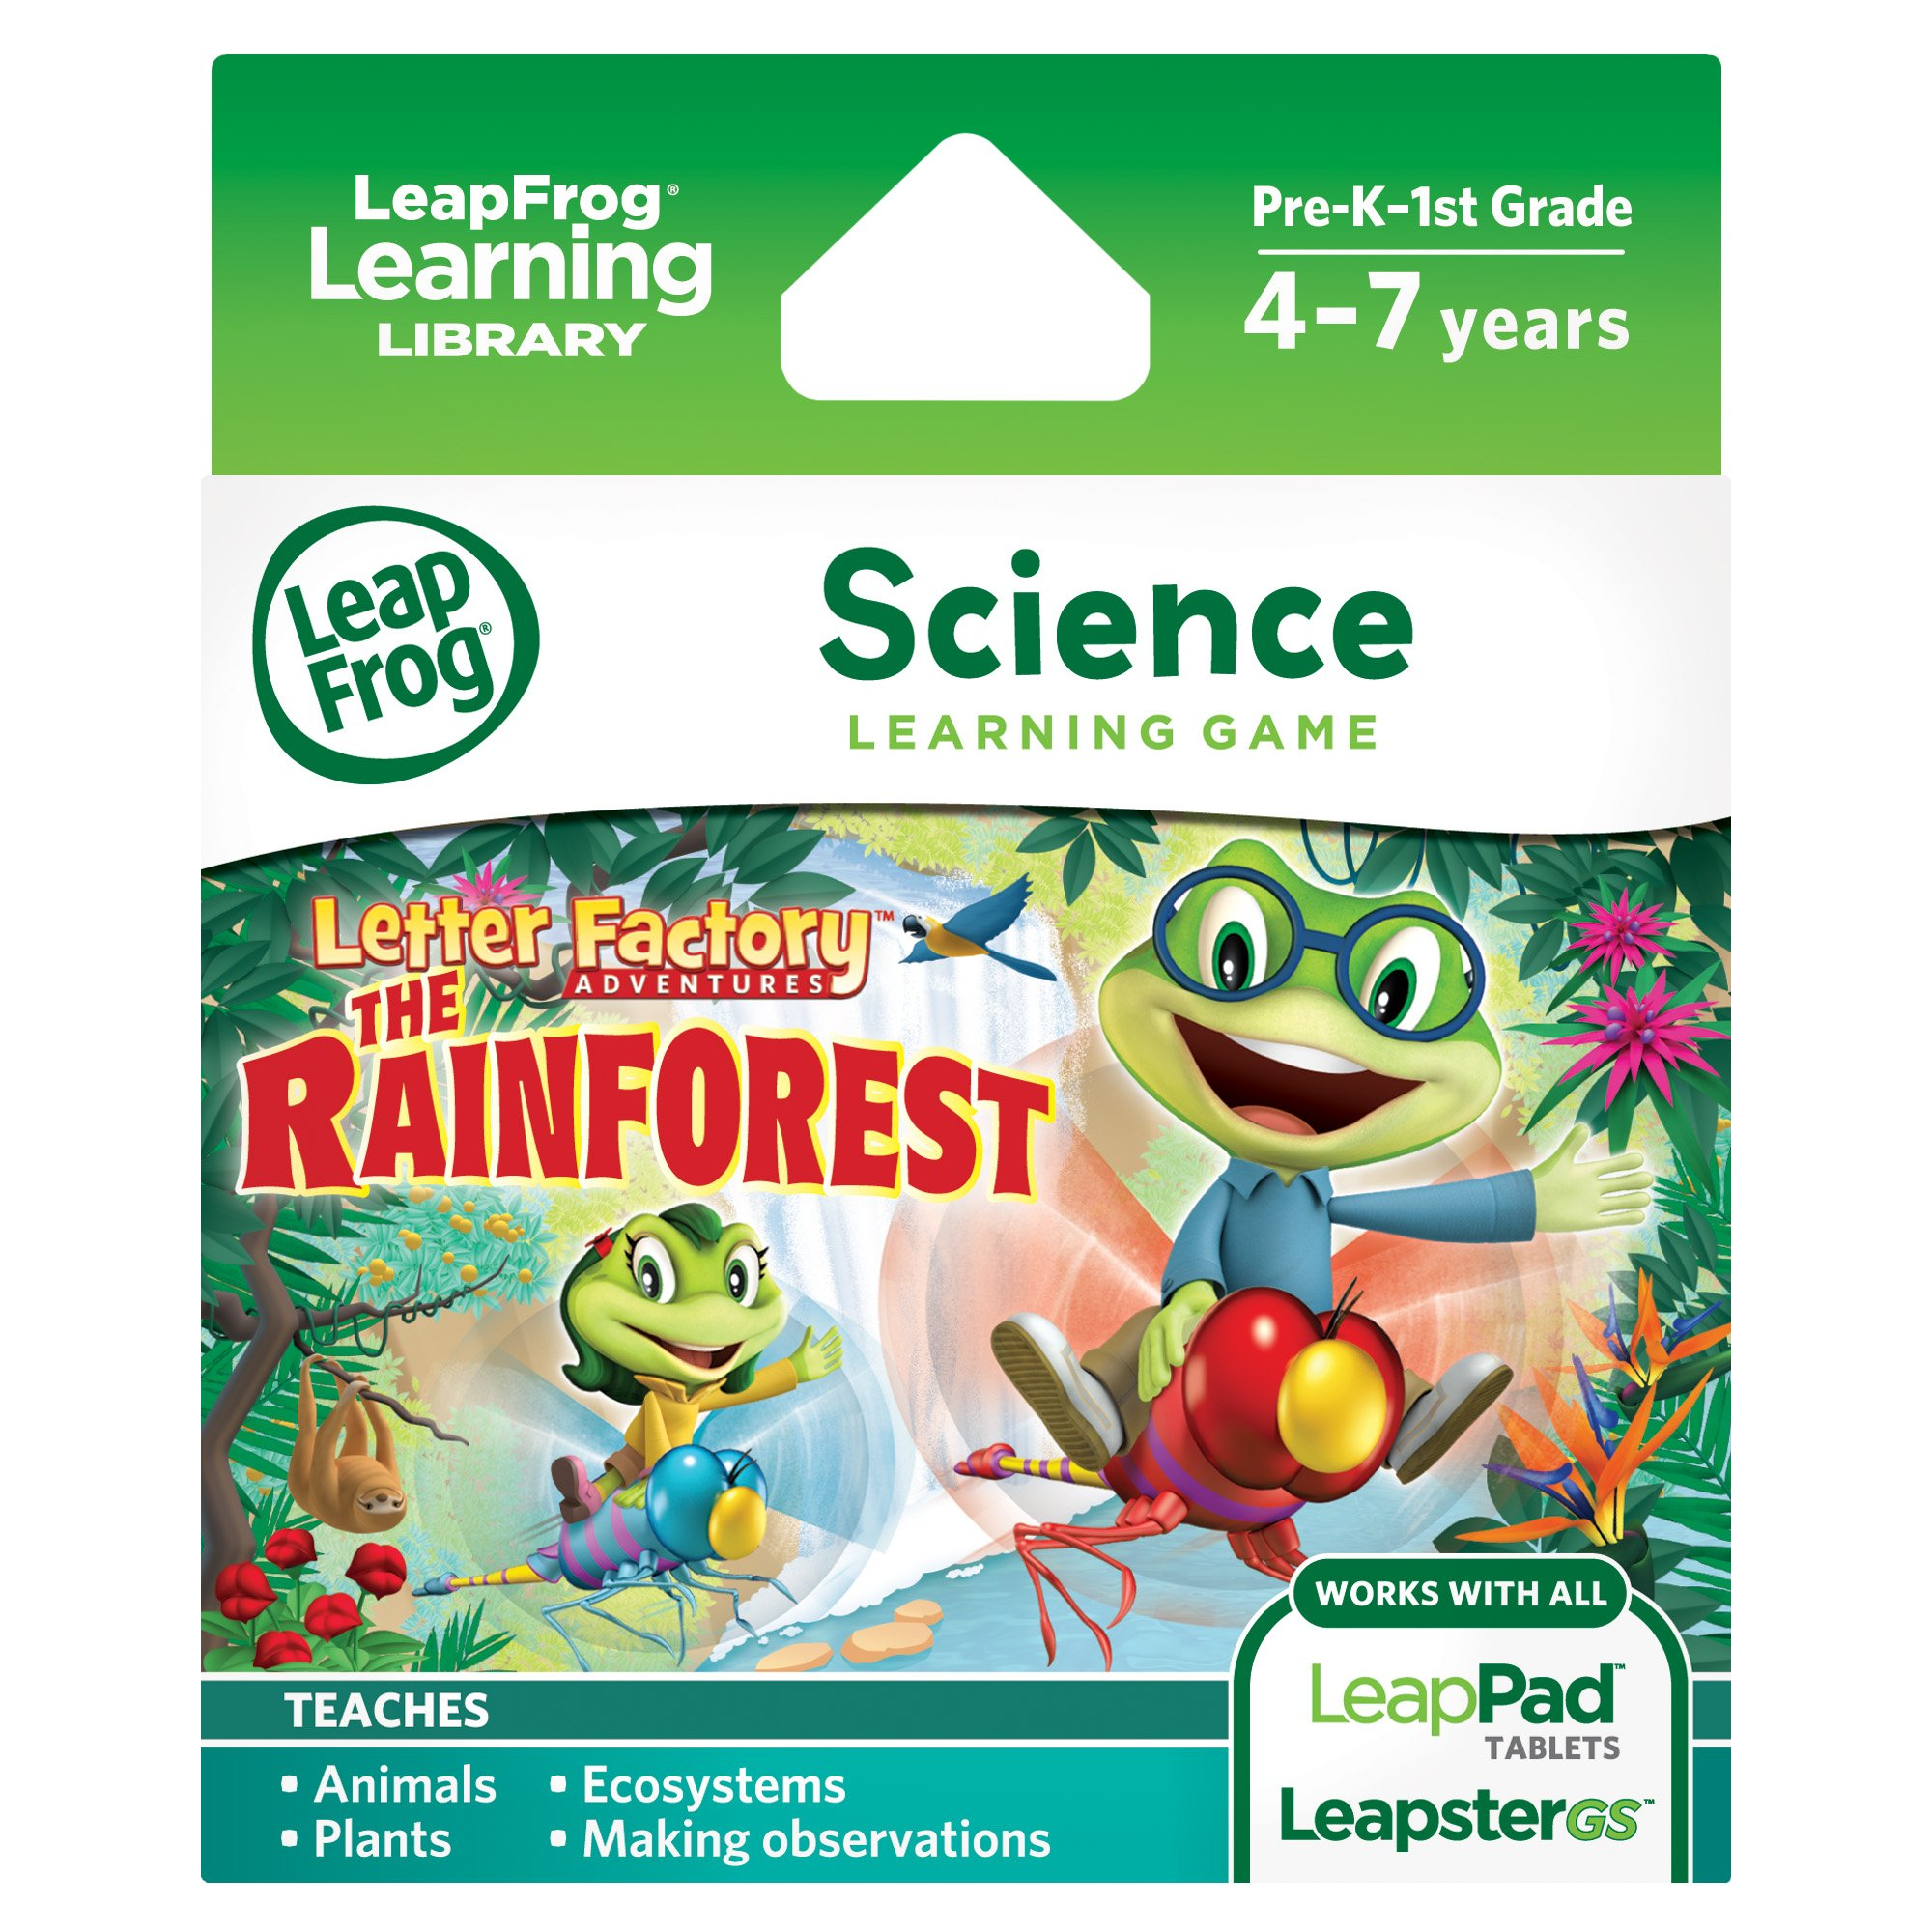 LeapFrog Learning Game Letter Factory Adventures: The Rainforest (for LeapPad tablets and LeapsterGS)